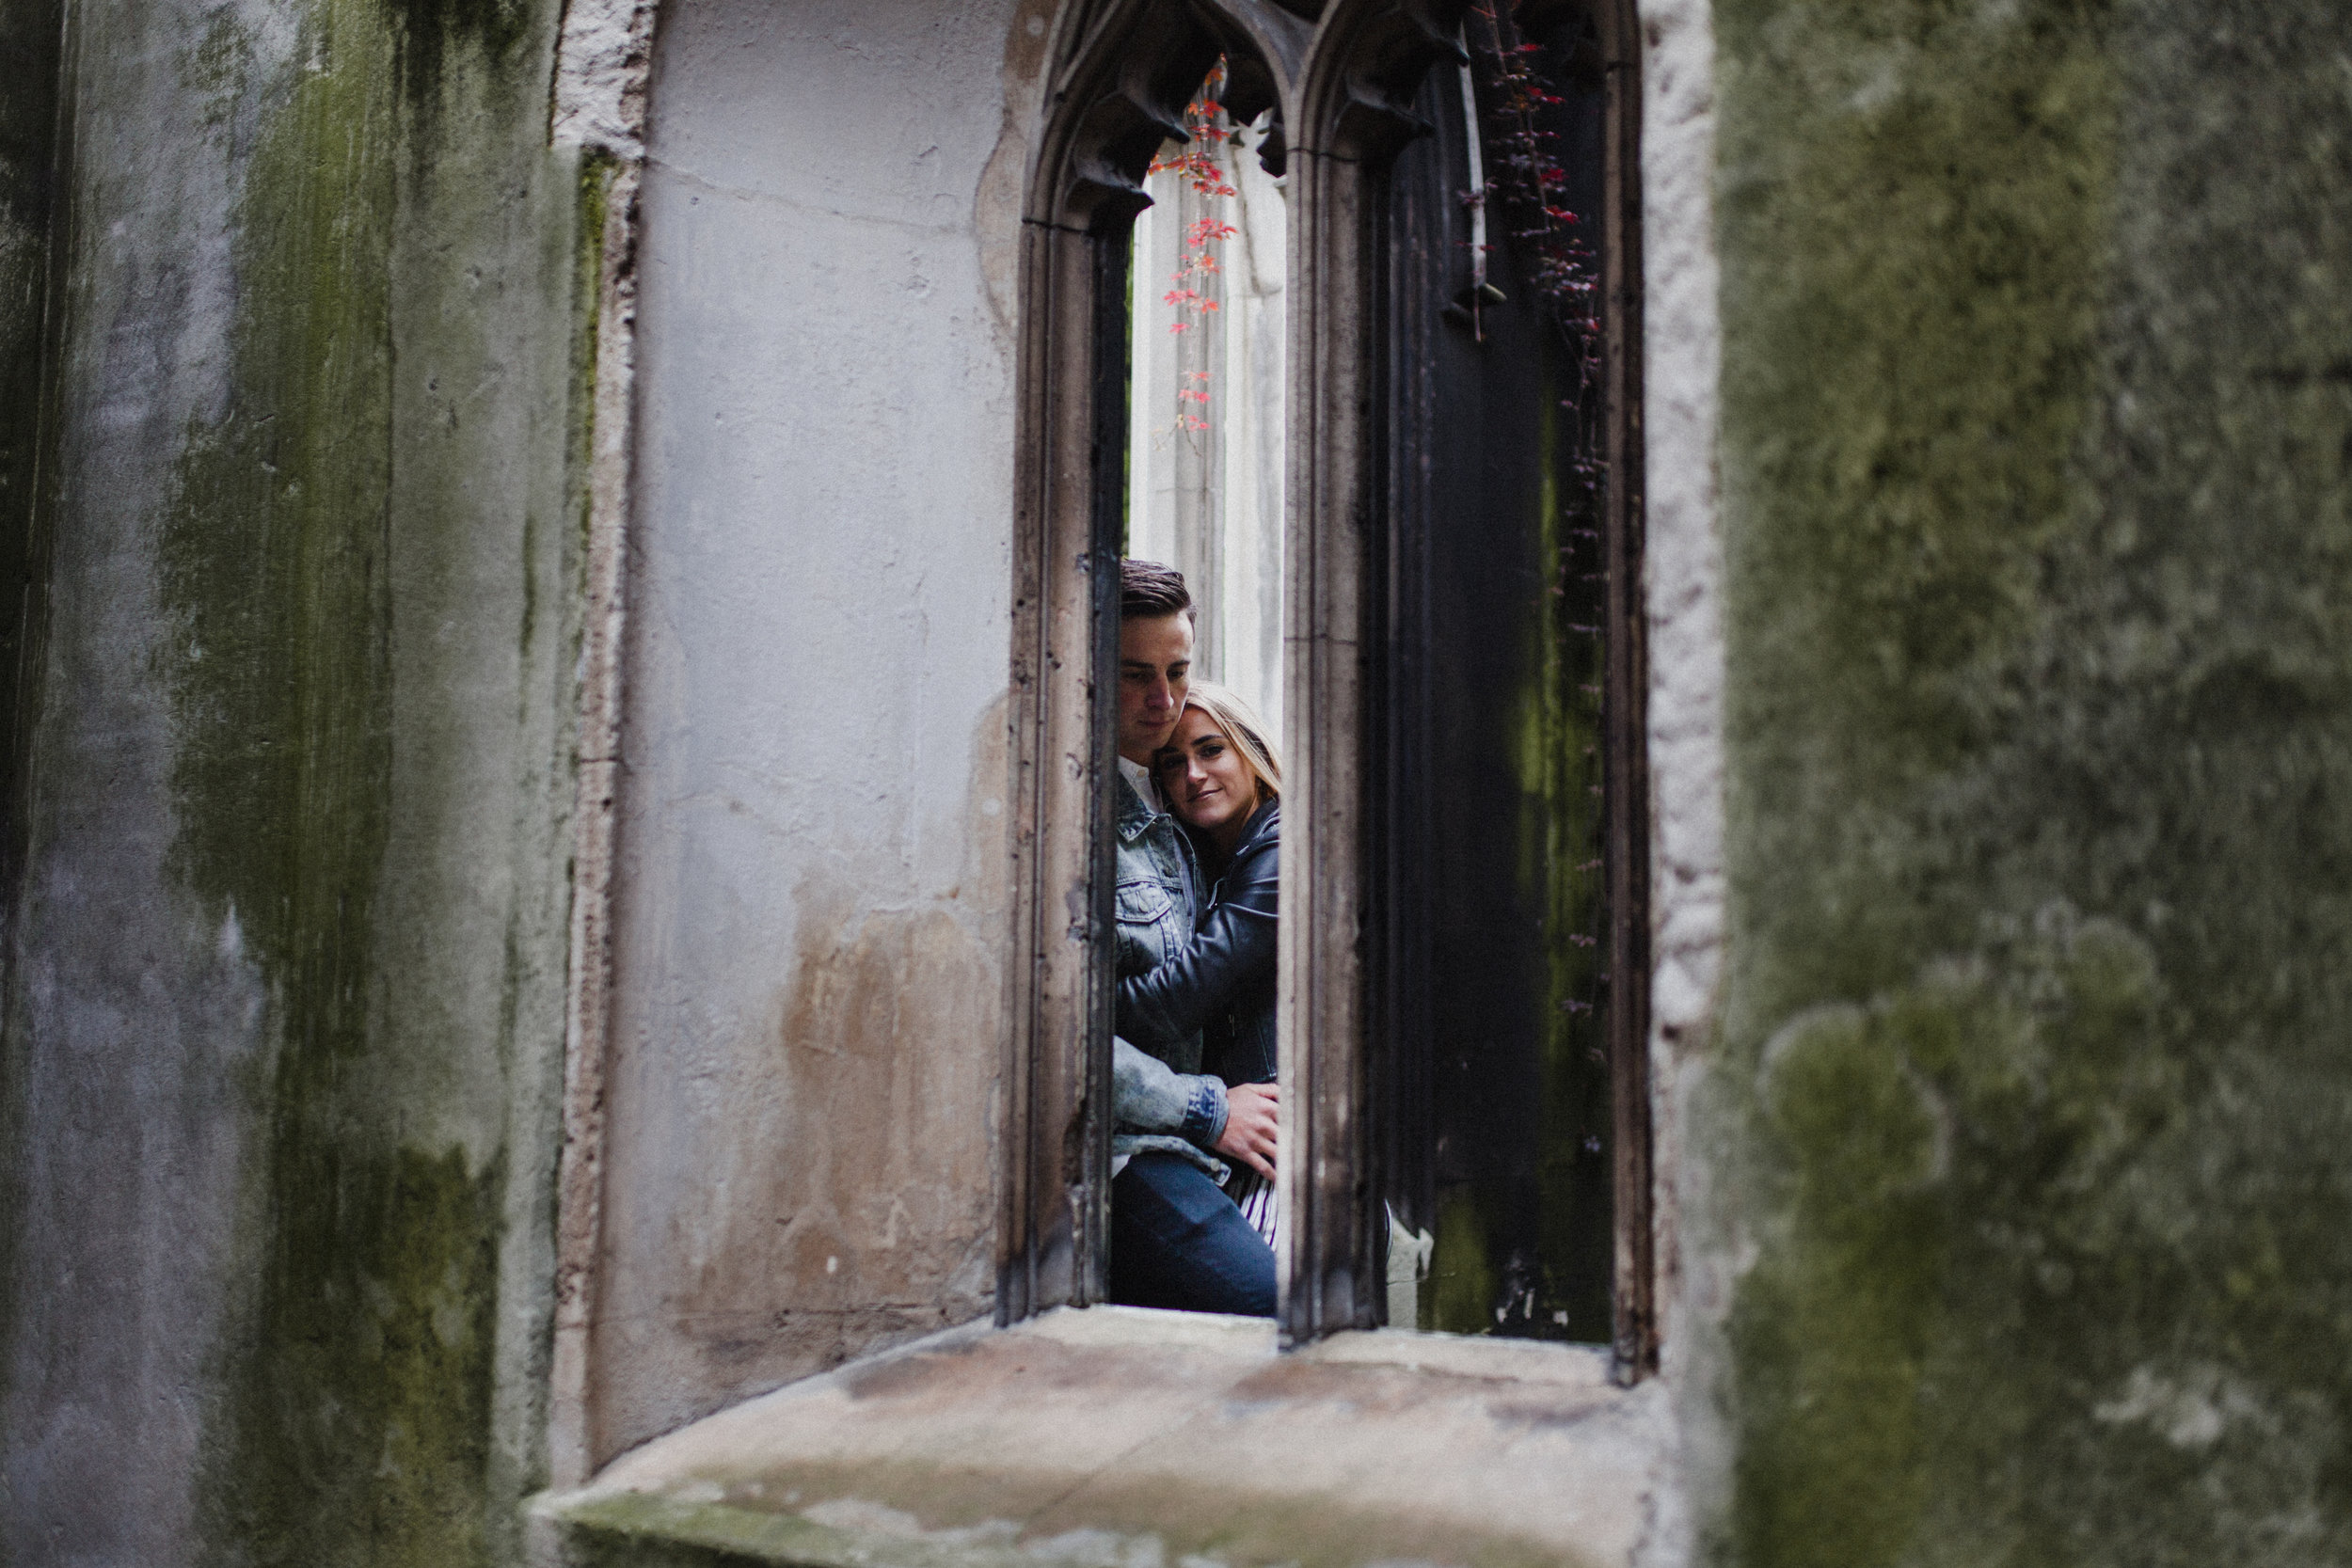 A portrait through a window in the ruins of St Dunstan-in-the-East, which is now a public garden.